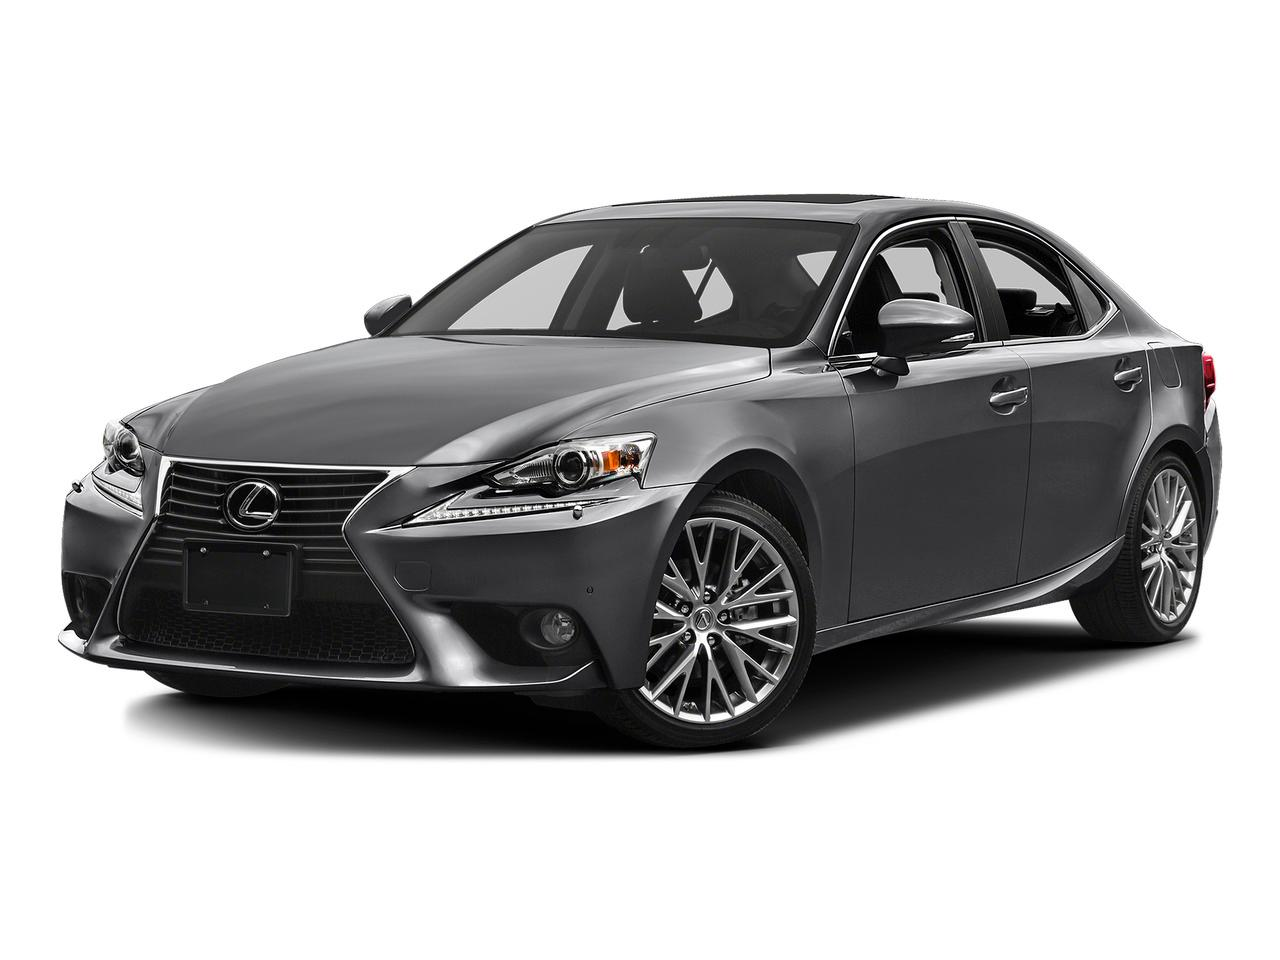 2015 Lexus IS 250 Vehicle Photo in Portland, OR 97225